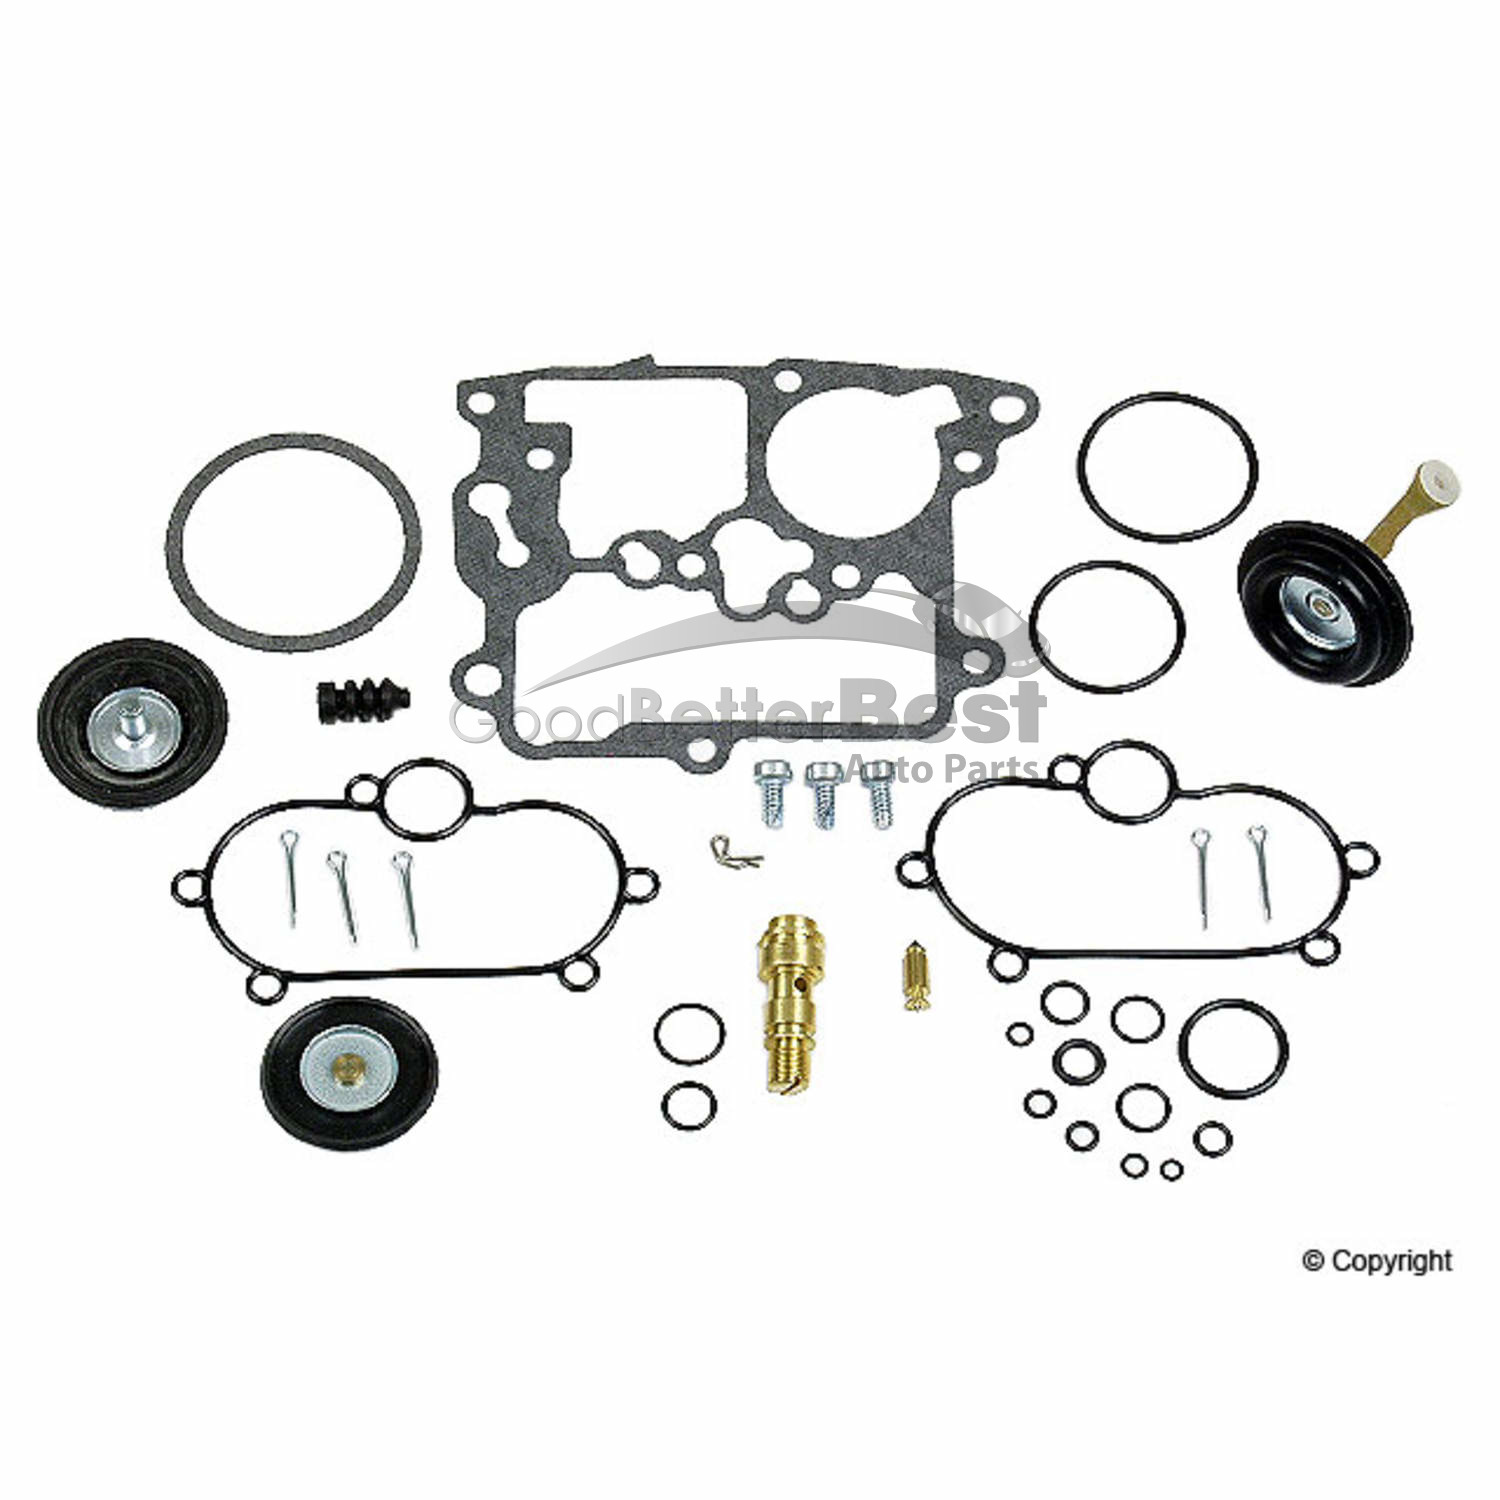 New Walker Products Carburetor Repair Kit For Honda